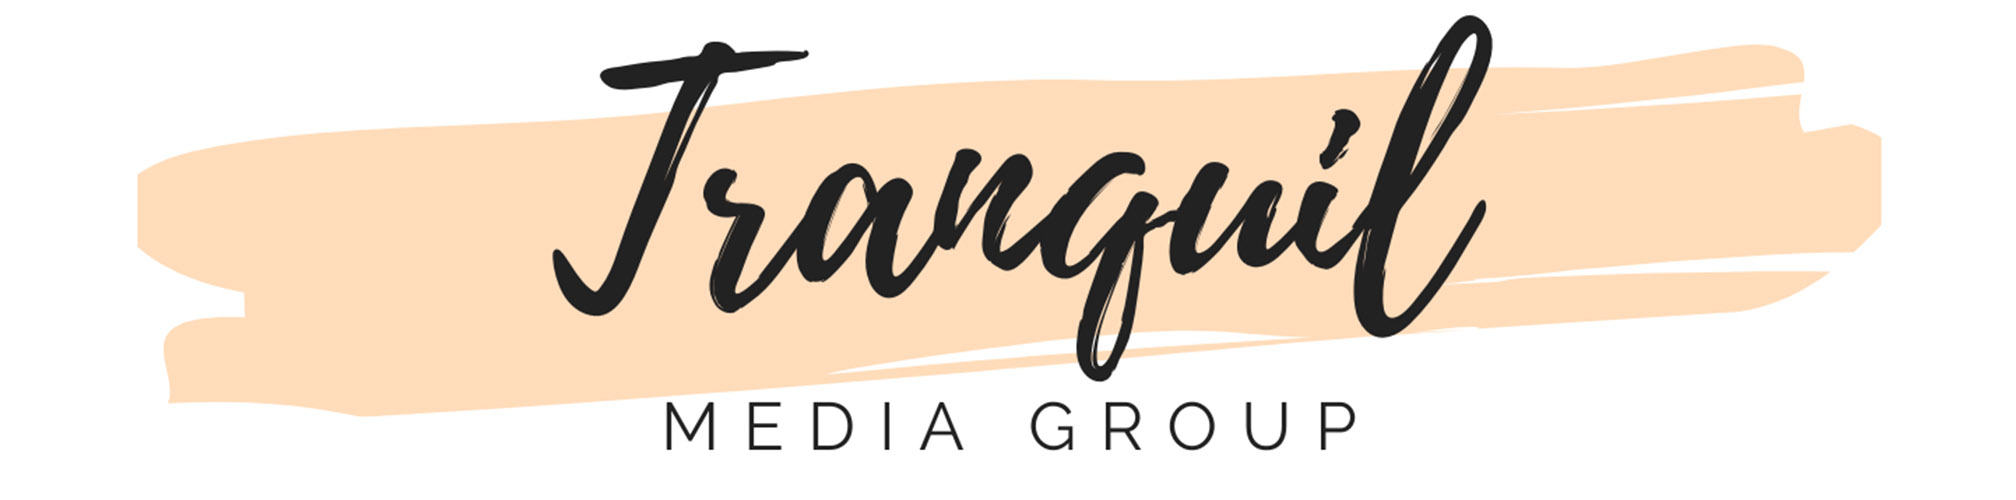 Tranquil Media Group